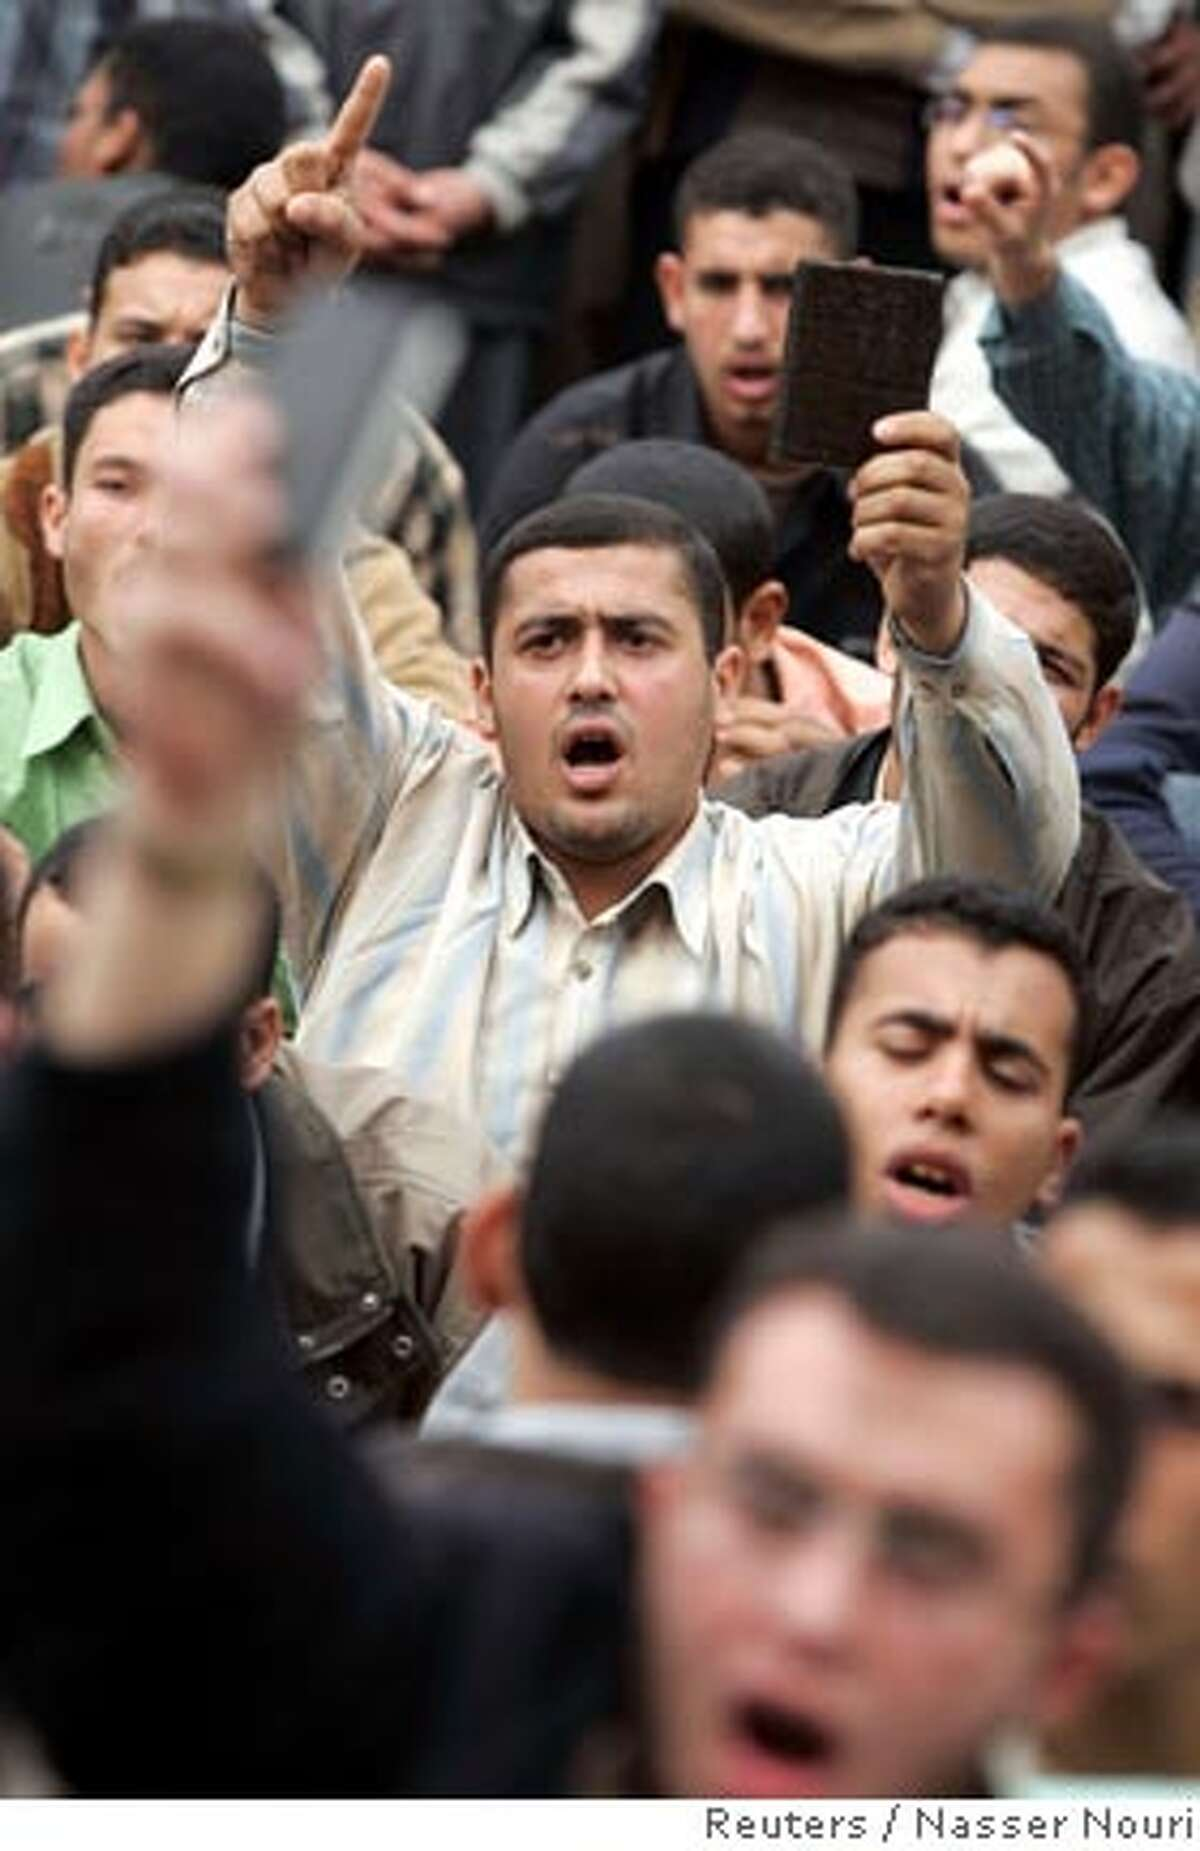 Muslim Brotherhood students protest at Al-Azhar University in Cairo December 14, 2006. Egyptian police detained the deputy leader of the opposition Muslim Brotherhood, about 10 prominent members and scores of Islamist students in dawn raids on Thursday, Brotherhood and police sources said. REUTERS/Nasser Nouri (EGYPT) Ran on: 12-15-2006 Muslim Brotherhood students protest at Al-Azhar University in Cairo. Some wore militant-type clothing with black face masks. Ran on: 12-15-2006 Muslim Brotherhood students protest at Al-Azhar University in Cairo. Some wore militant-type clothing with black face masks.